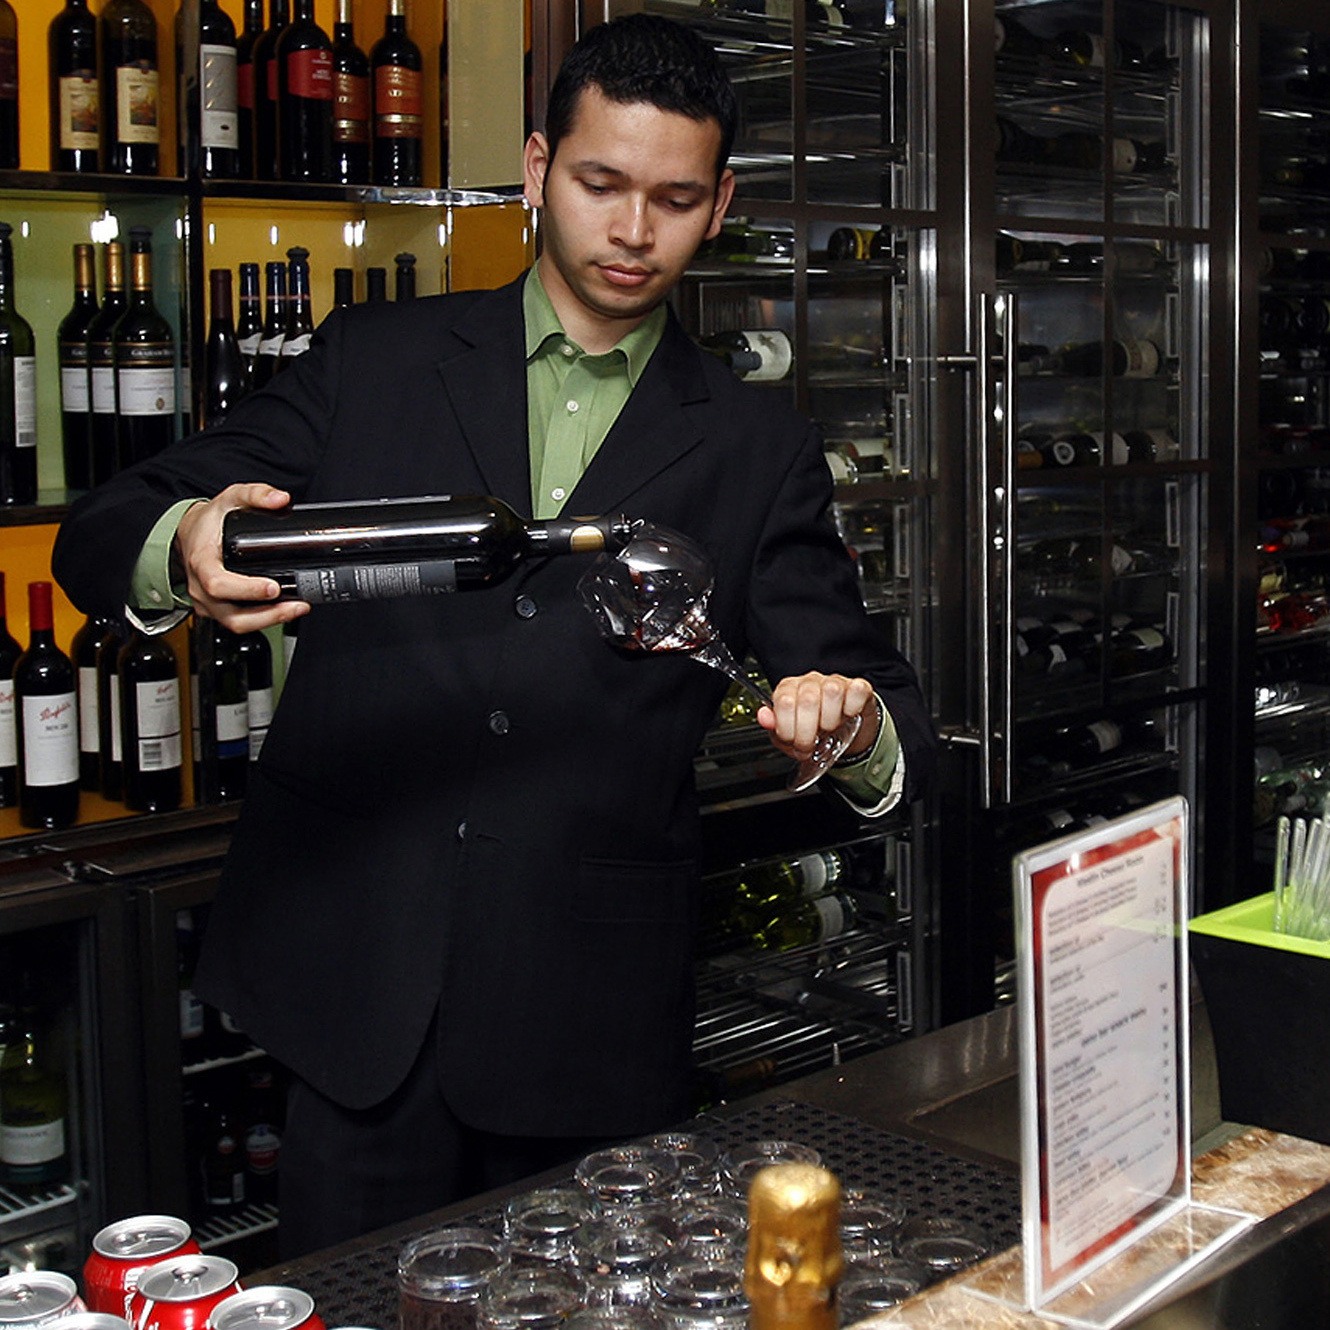 A waiter pours a drink at a bar in Dubai in 2011. In the United Arab Emirates, foreign residents may obtain permits to buy alcohol from a handful of designated stores. Booze is also available in licensed hotels and pubs. Locals, yet again, are out of luck.